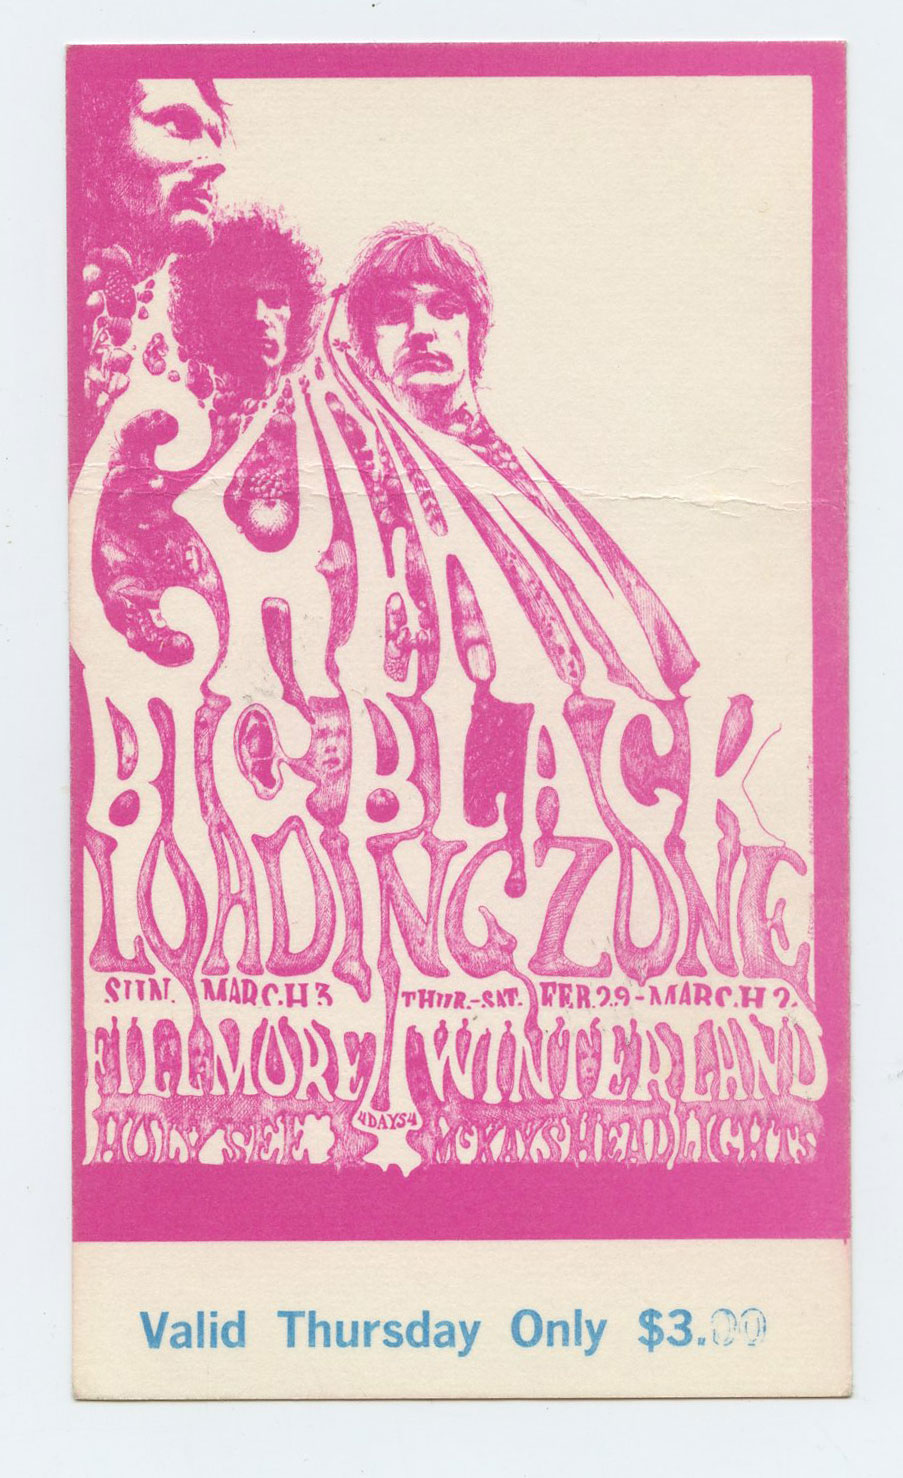 Bill Graham 109 Ticket Cream Big Black Loading Zone 1968 Feb 29